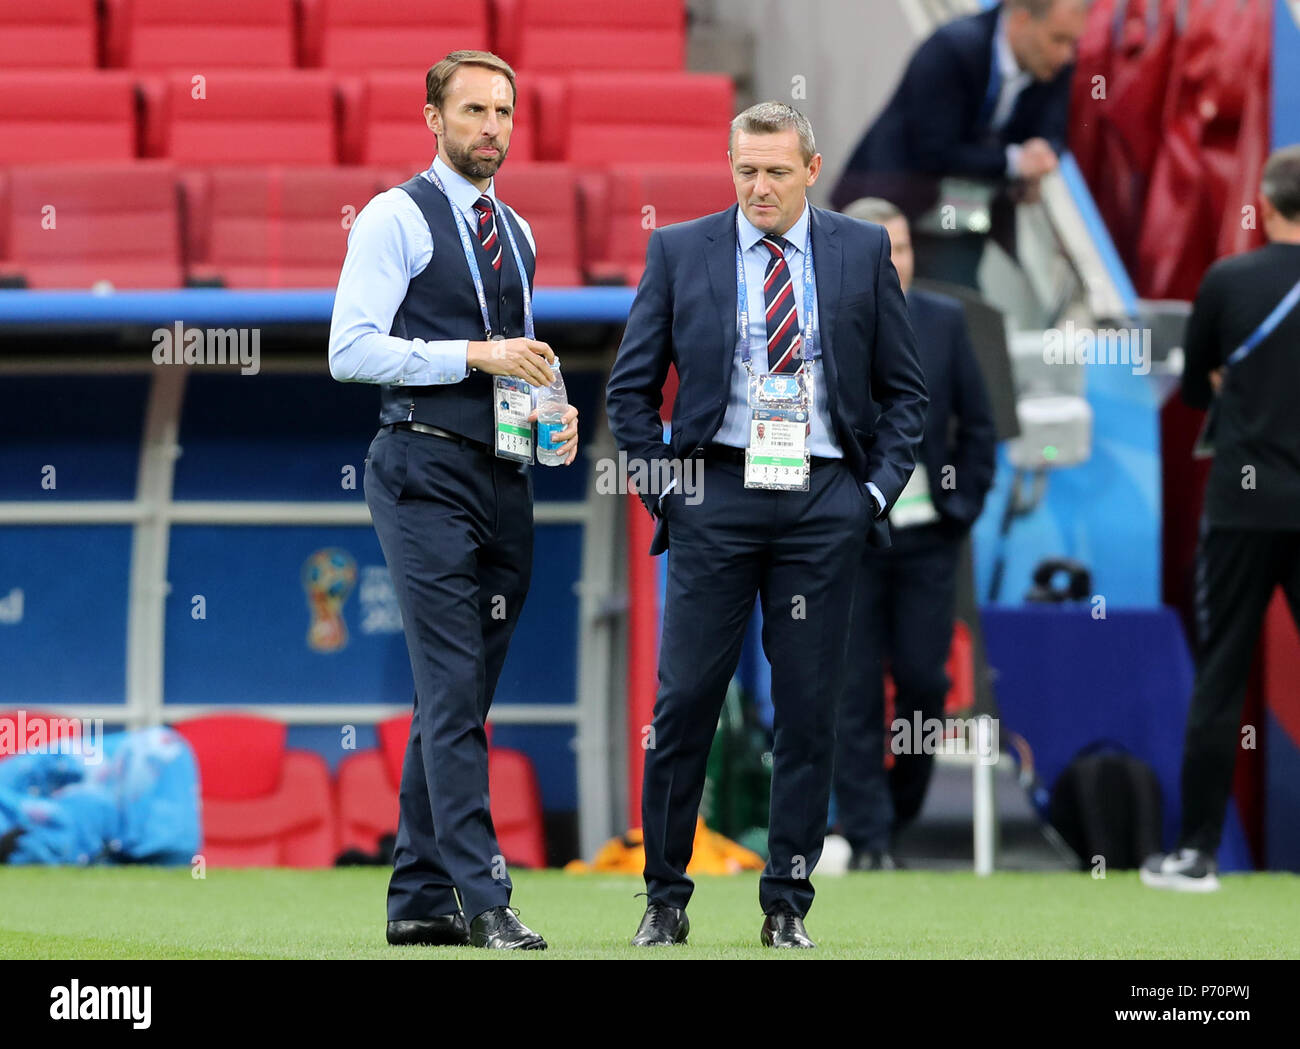 England manager Gareth Southgate (left) and Under 21's manager Tony Mowbray walk the pitch prior to the FIFA World Cup 2018, round of 16 match at the Spartak Stadium, Moscow. - Stock Image